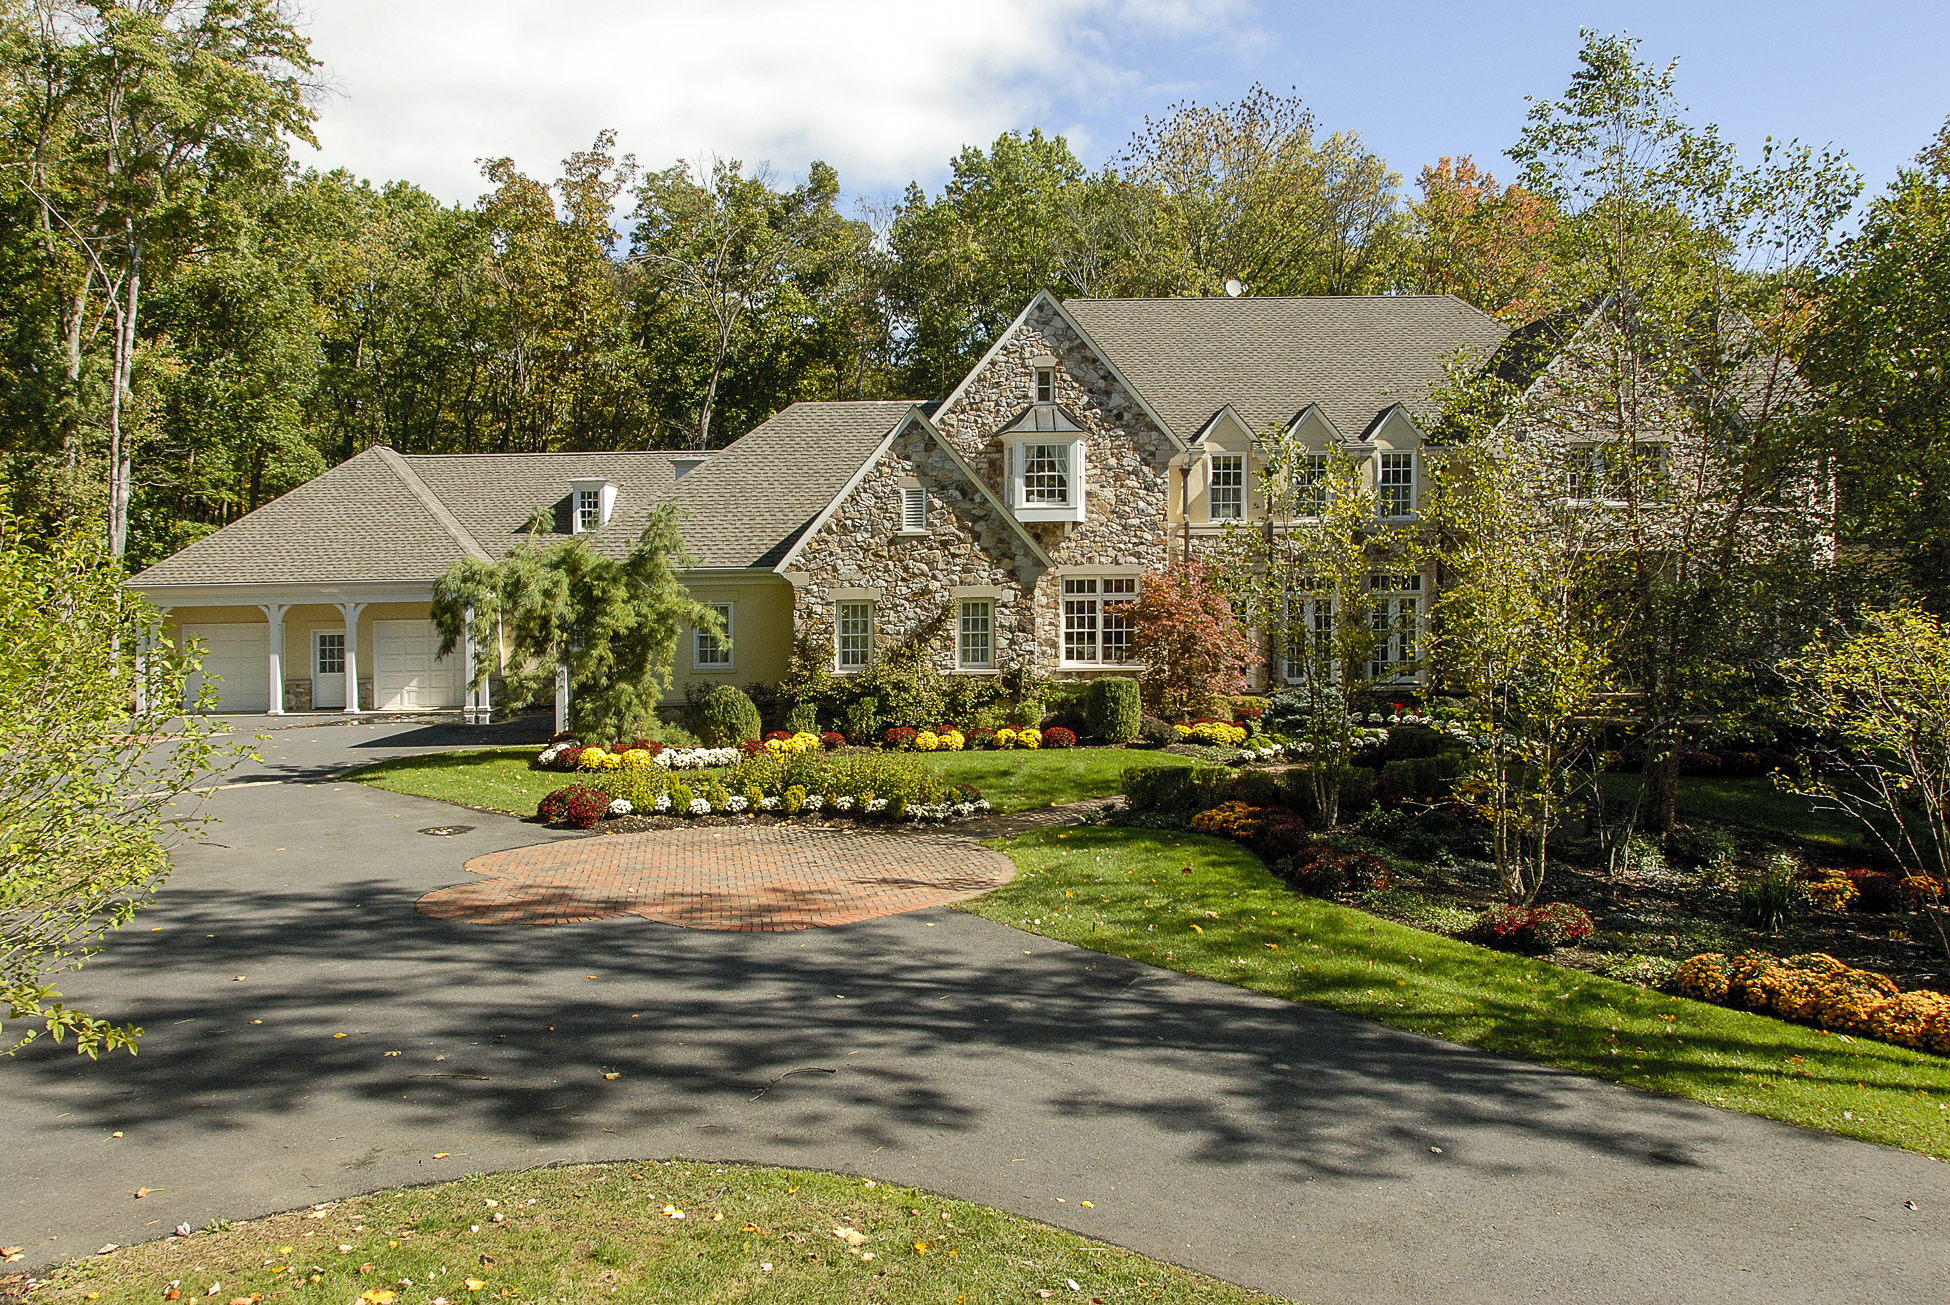 一戸建て のために 売買 アット Magnificent Manor Home in Princeton's Coveted Rushbrook 27 Running Cedar Road Princeton, ニュージャージー, 08540 アメリカ合衆国